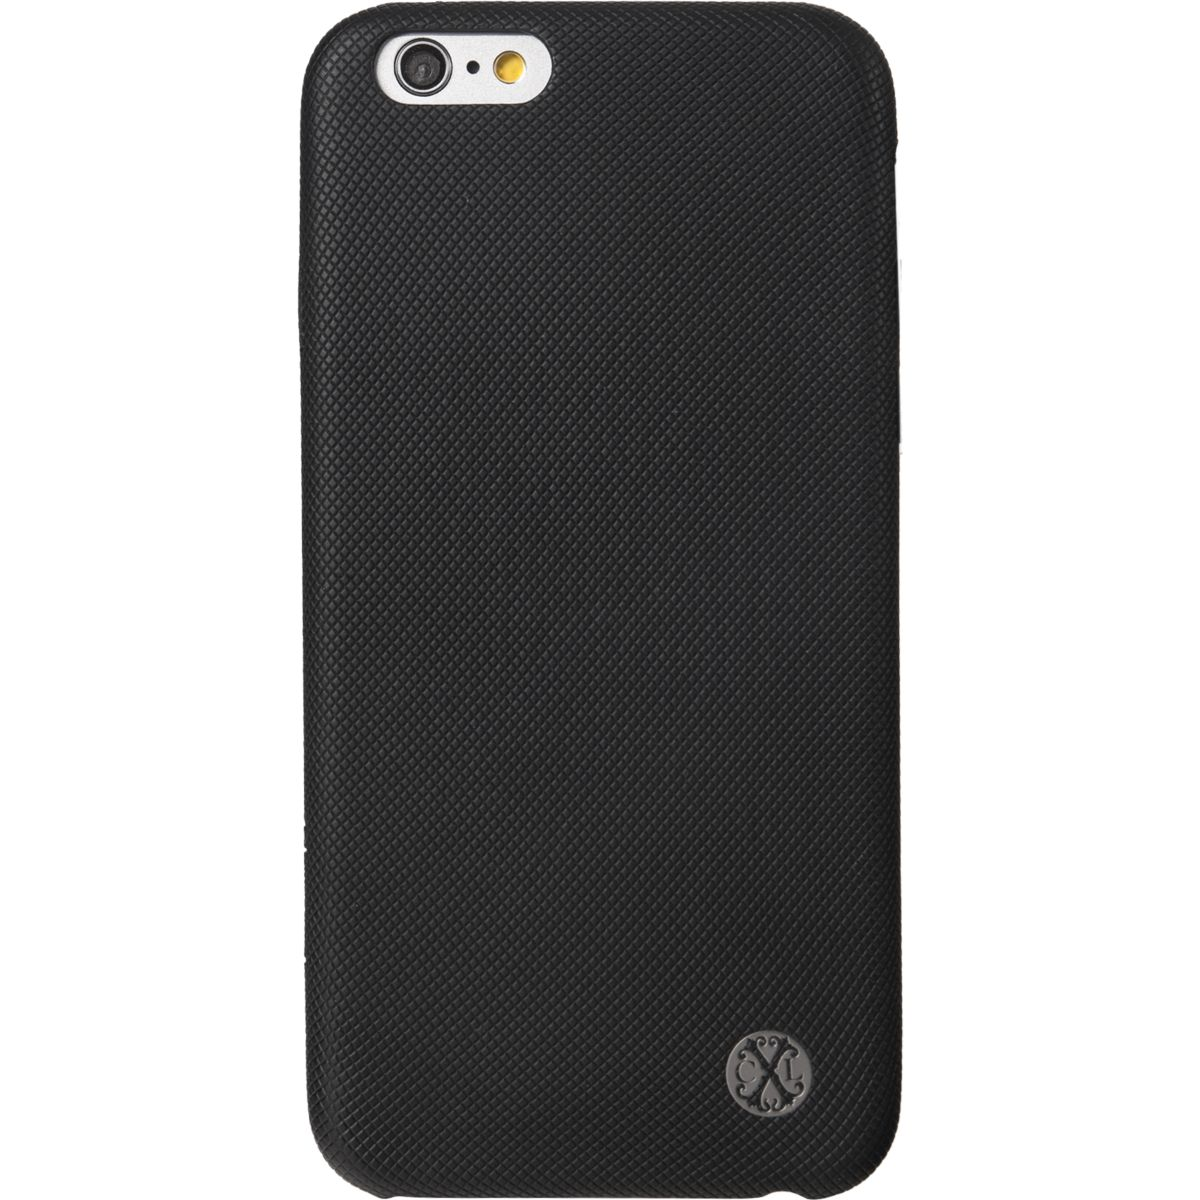 Coque CHRISTIAN LACROIX slim fit iPhone 6/6s noir